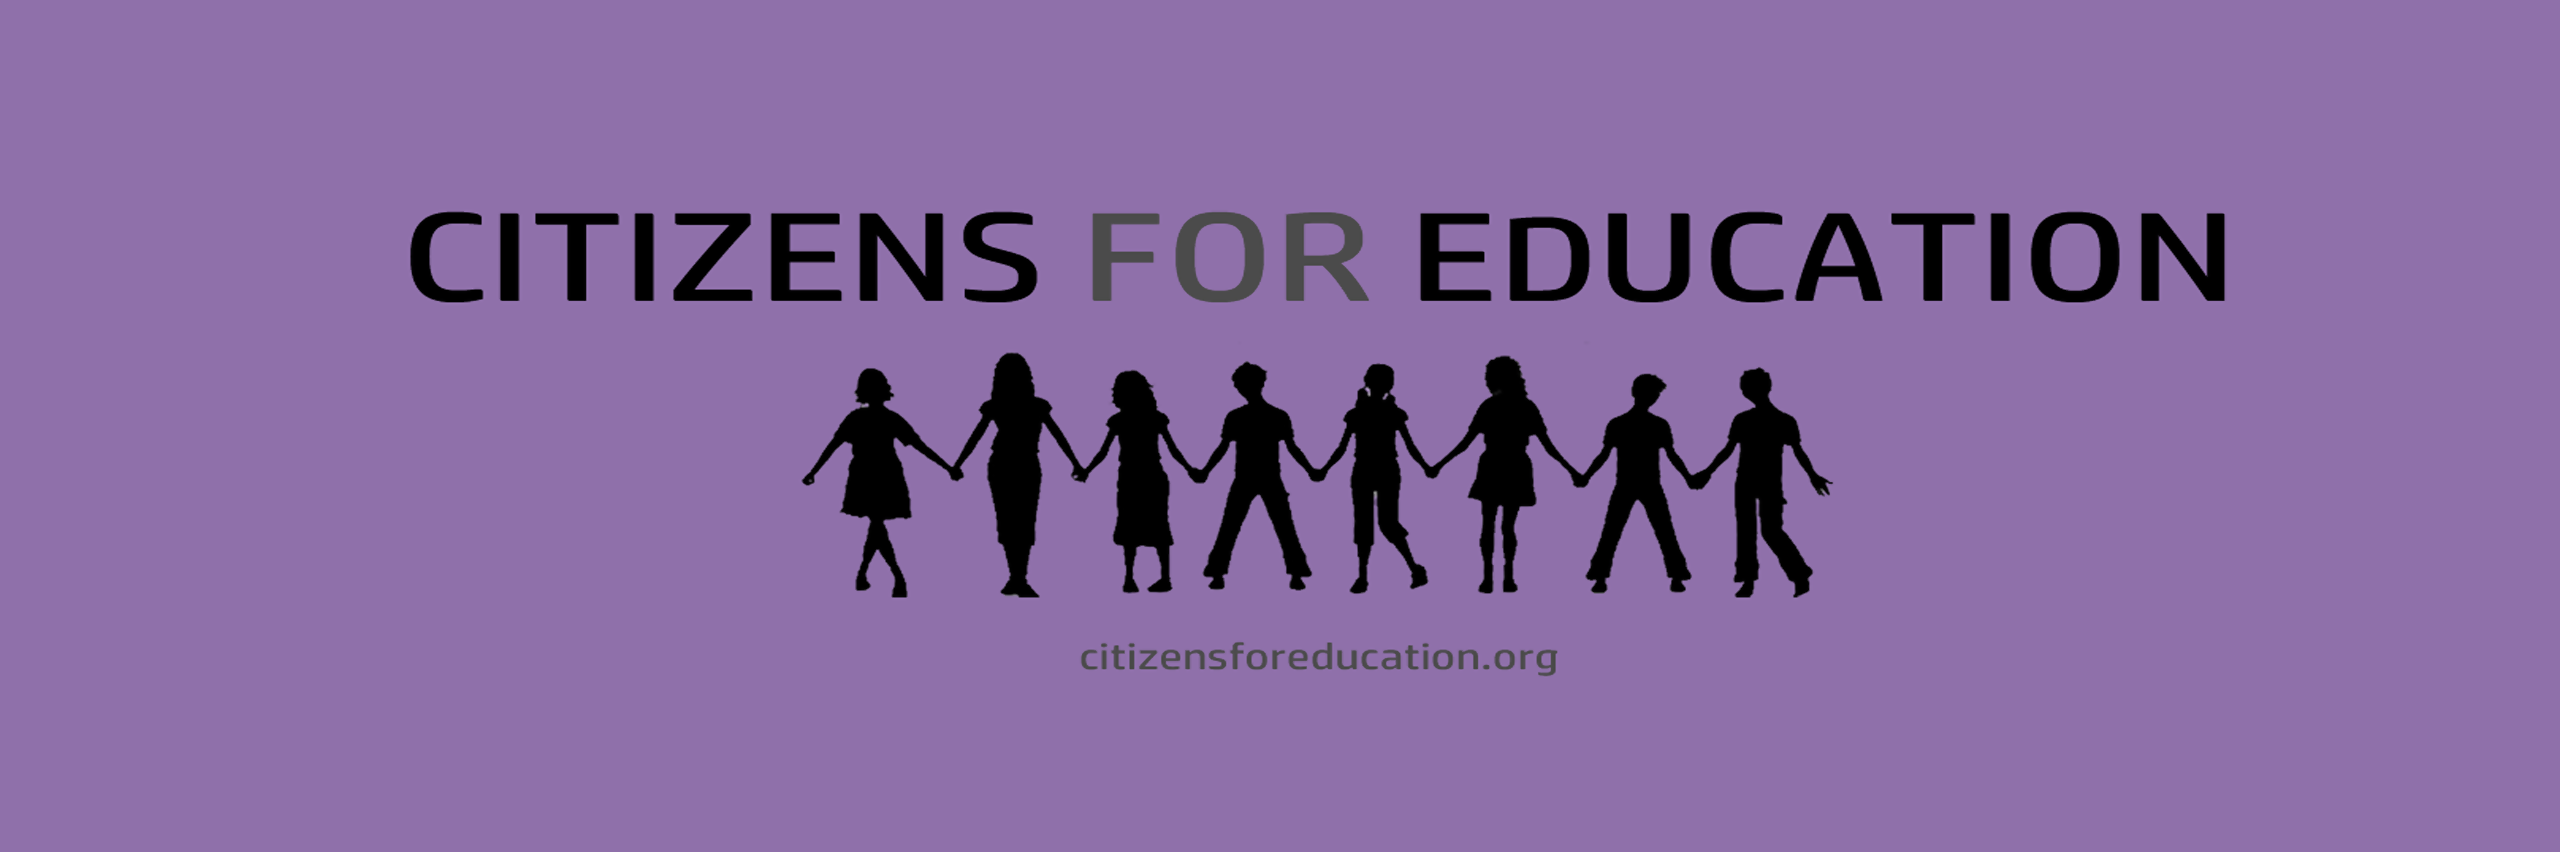 Citizens For Education